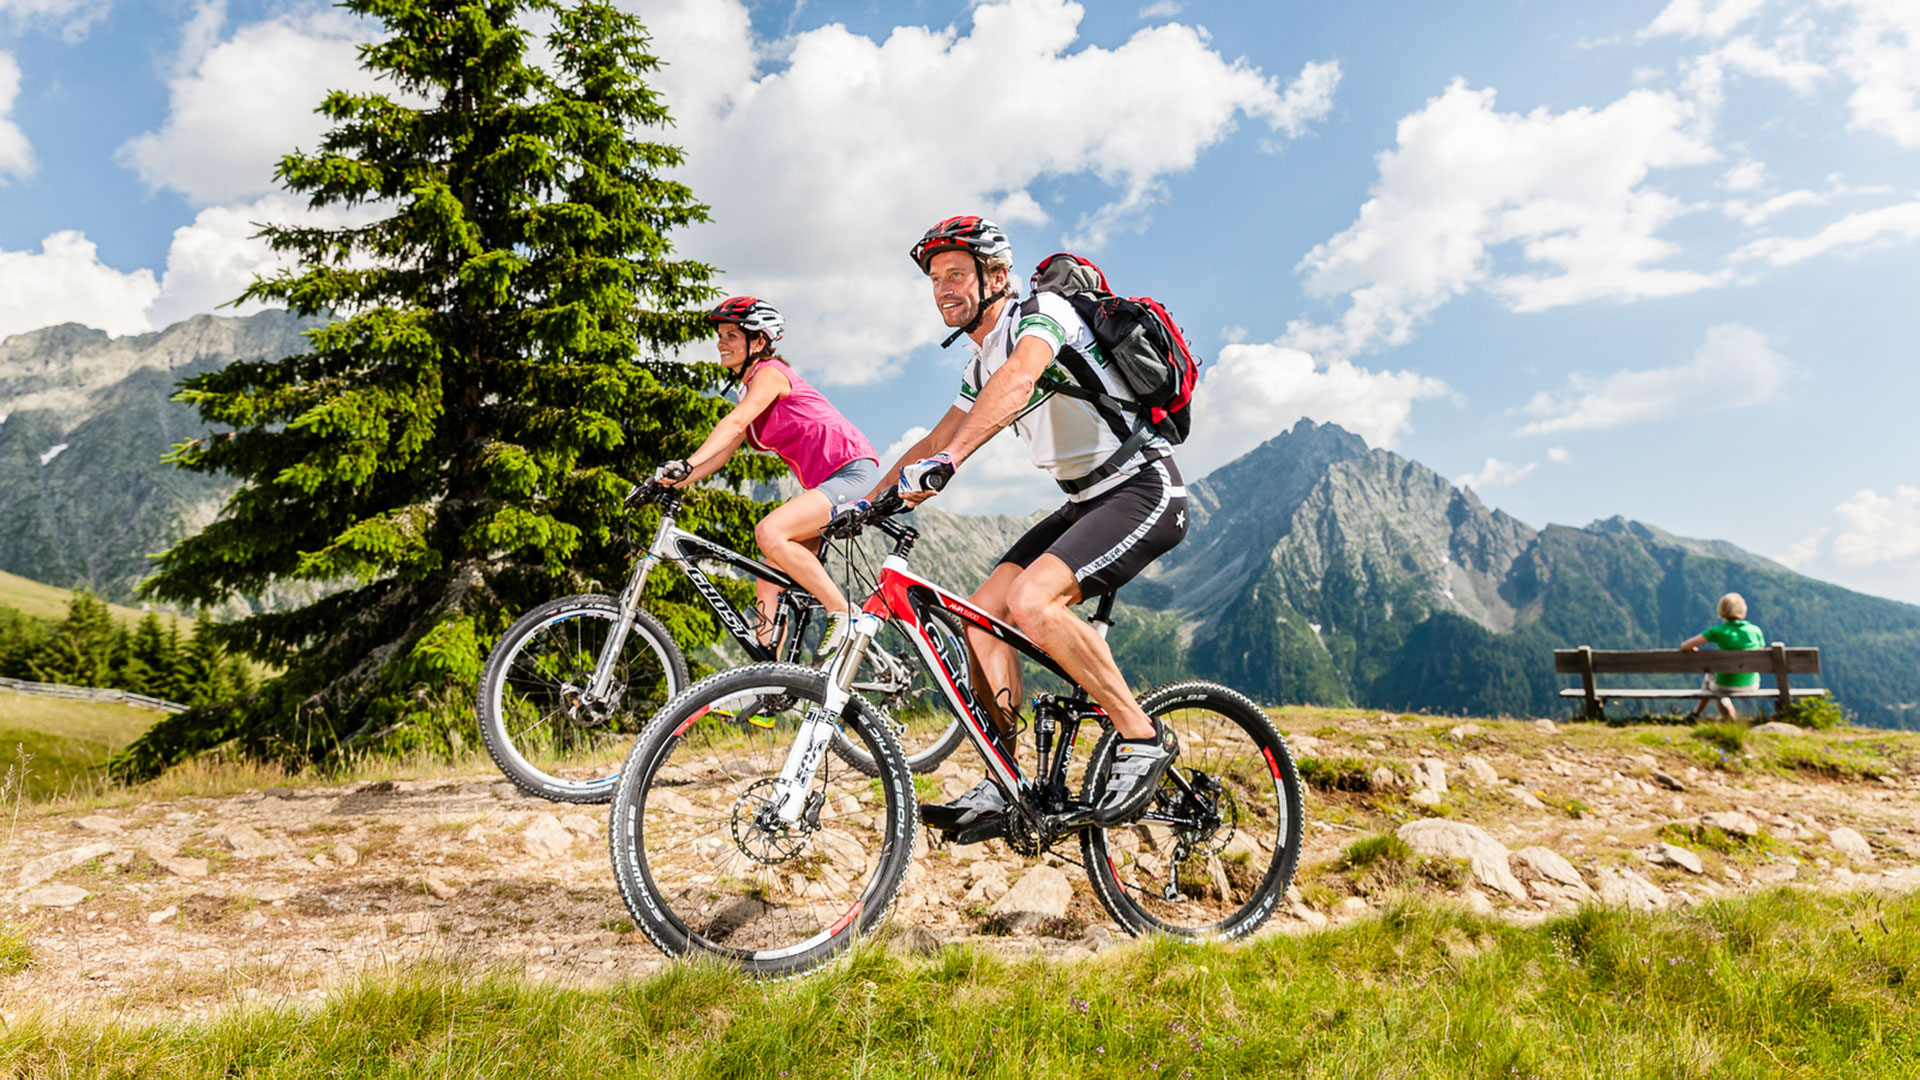 Un uomo e una donna fanno un tour in mountain bike sul monte Cervina